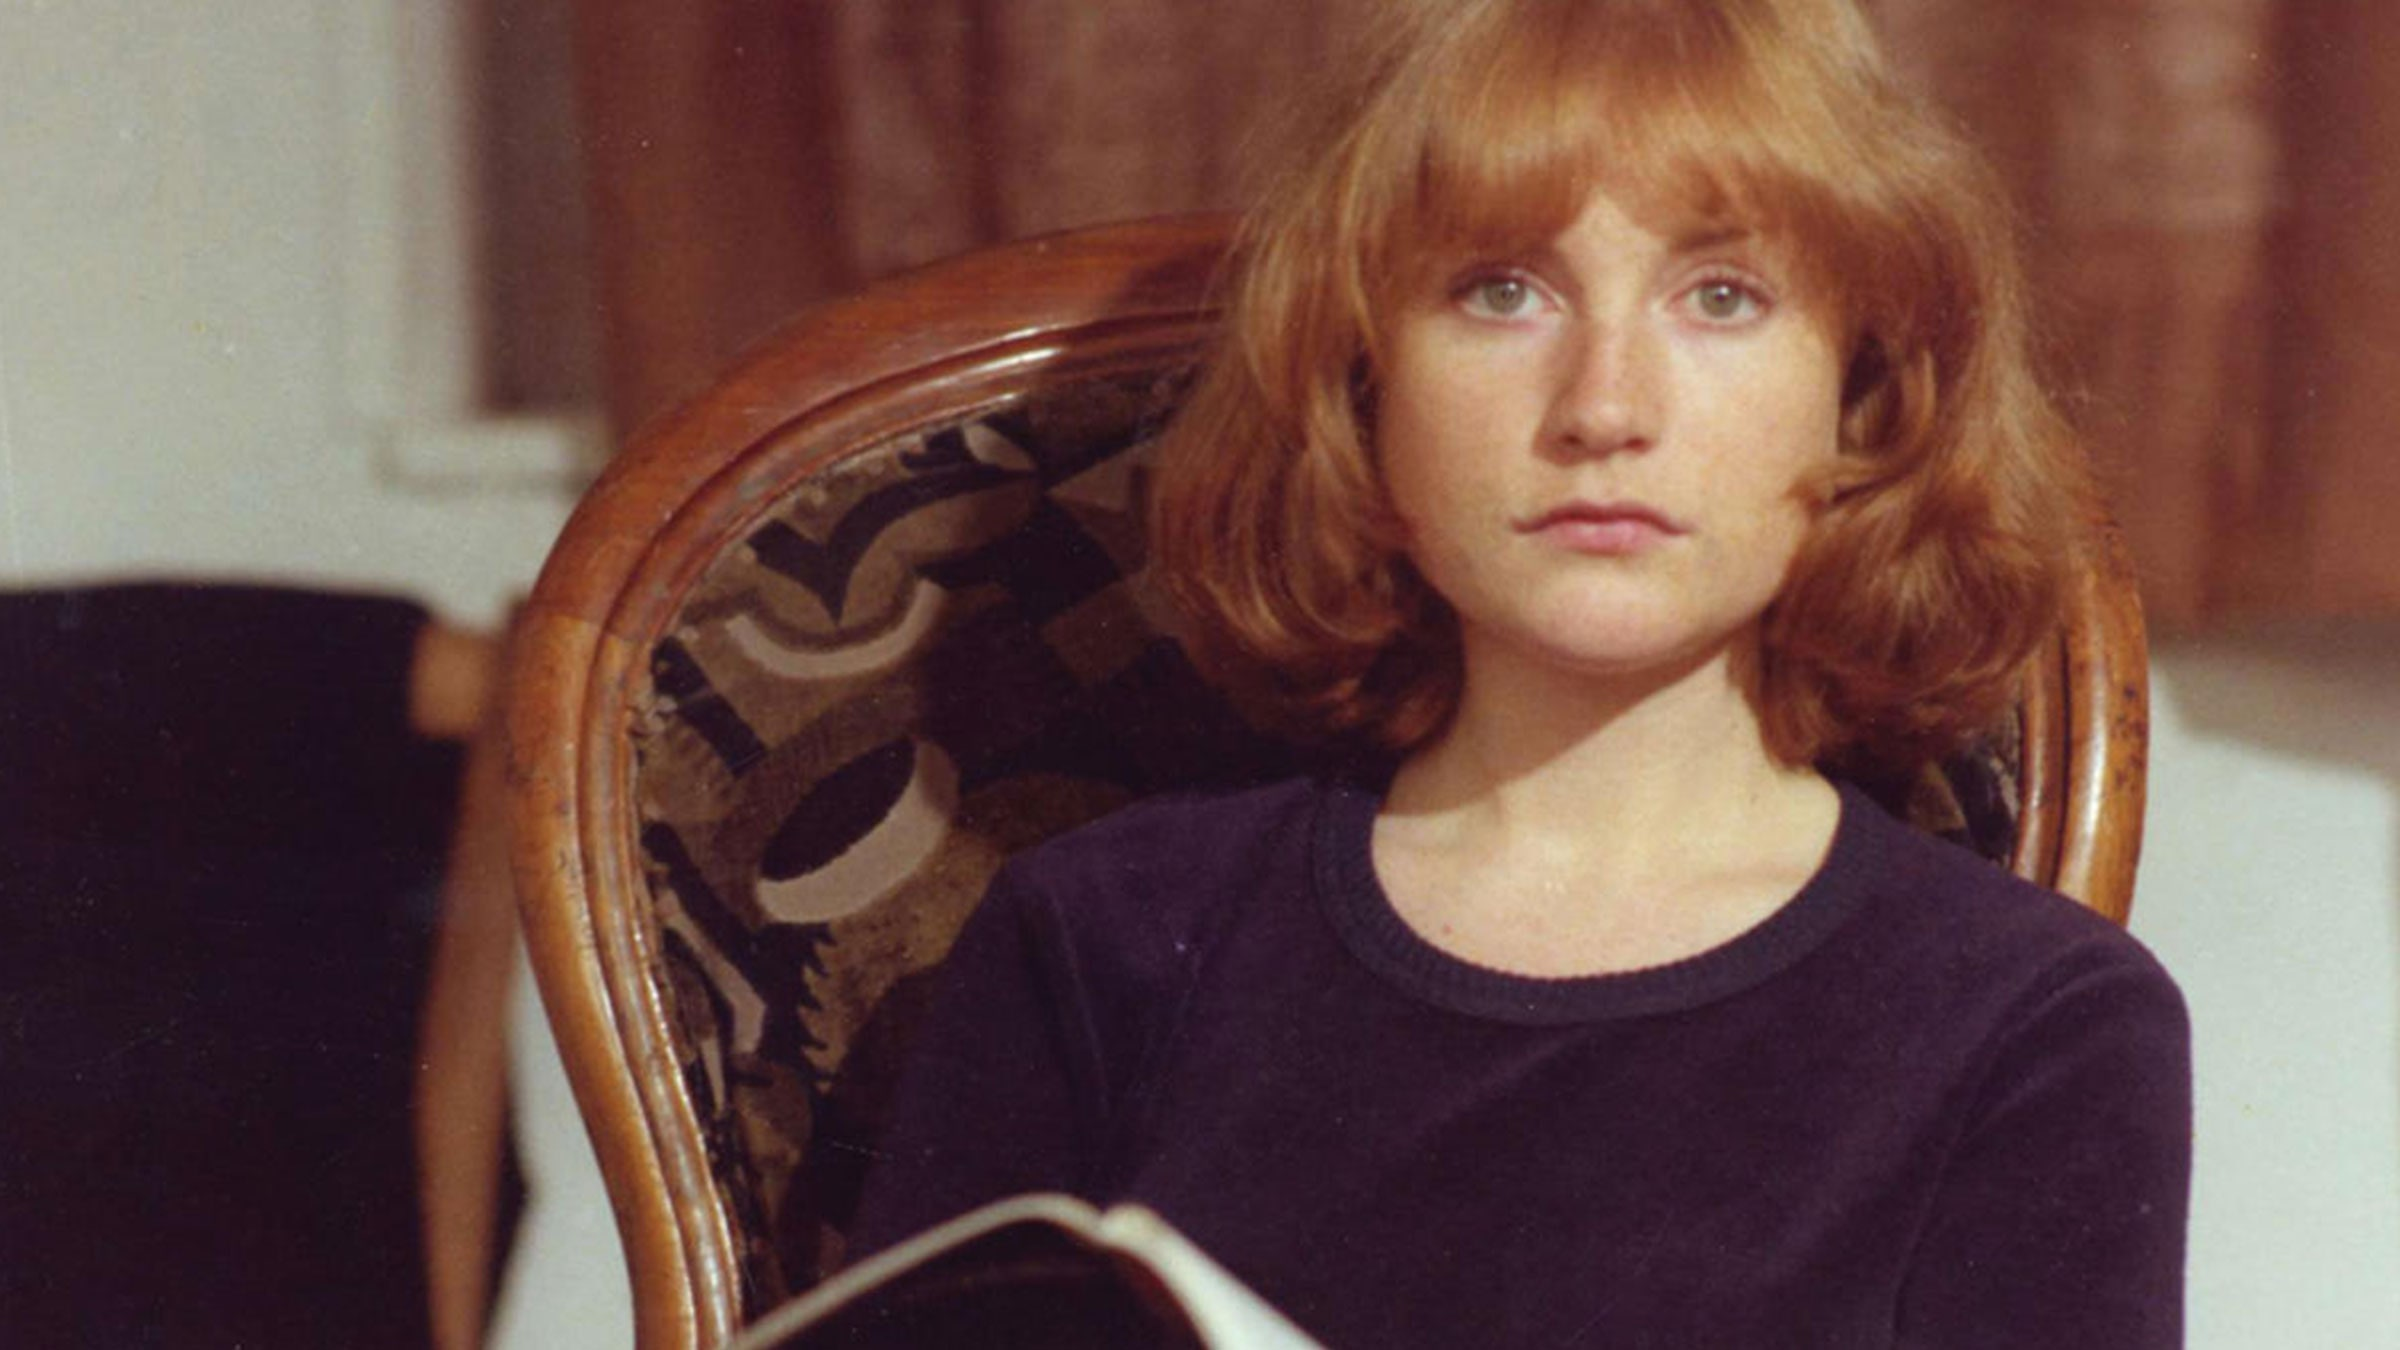 Isabelle Huppert: A Life to Play